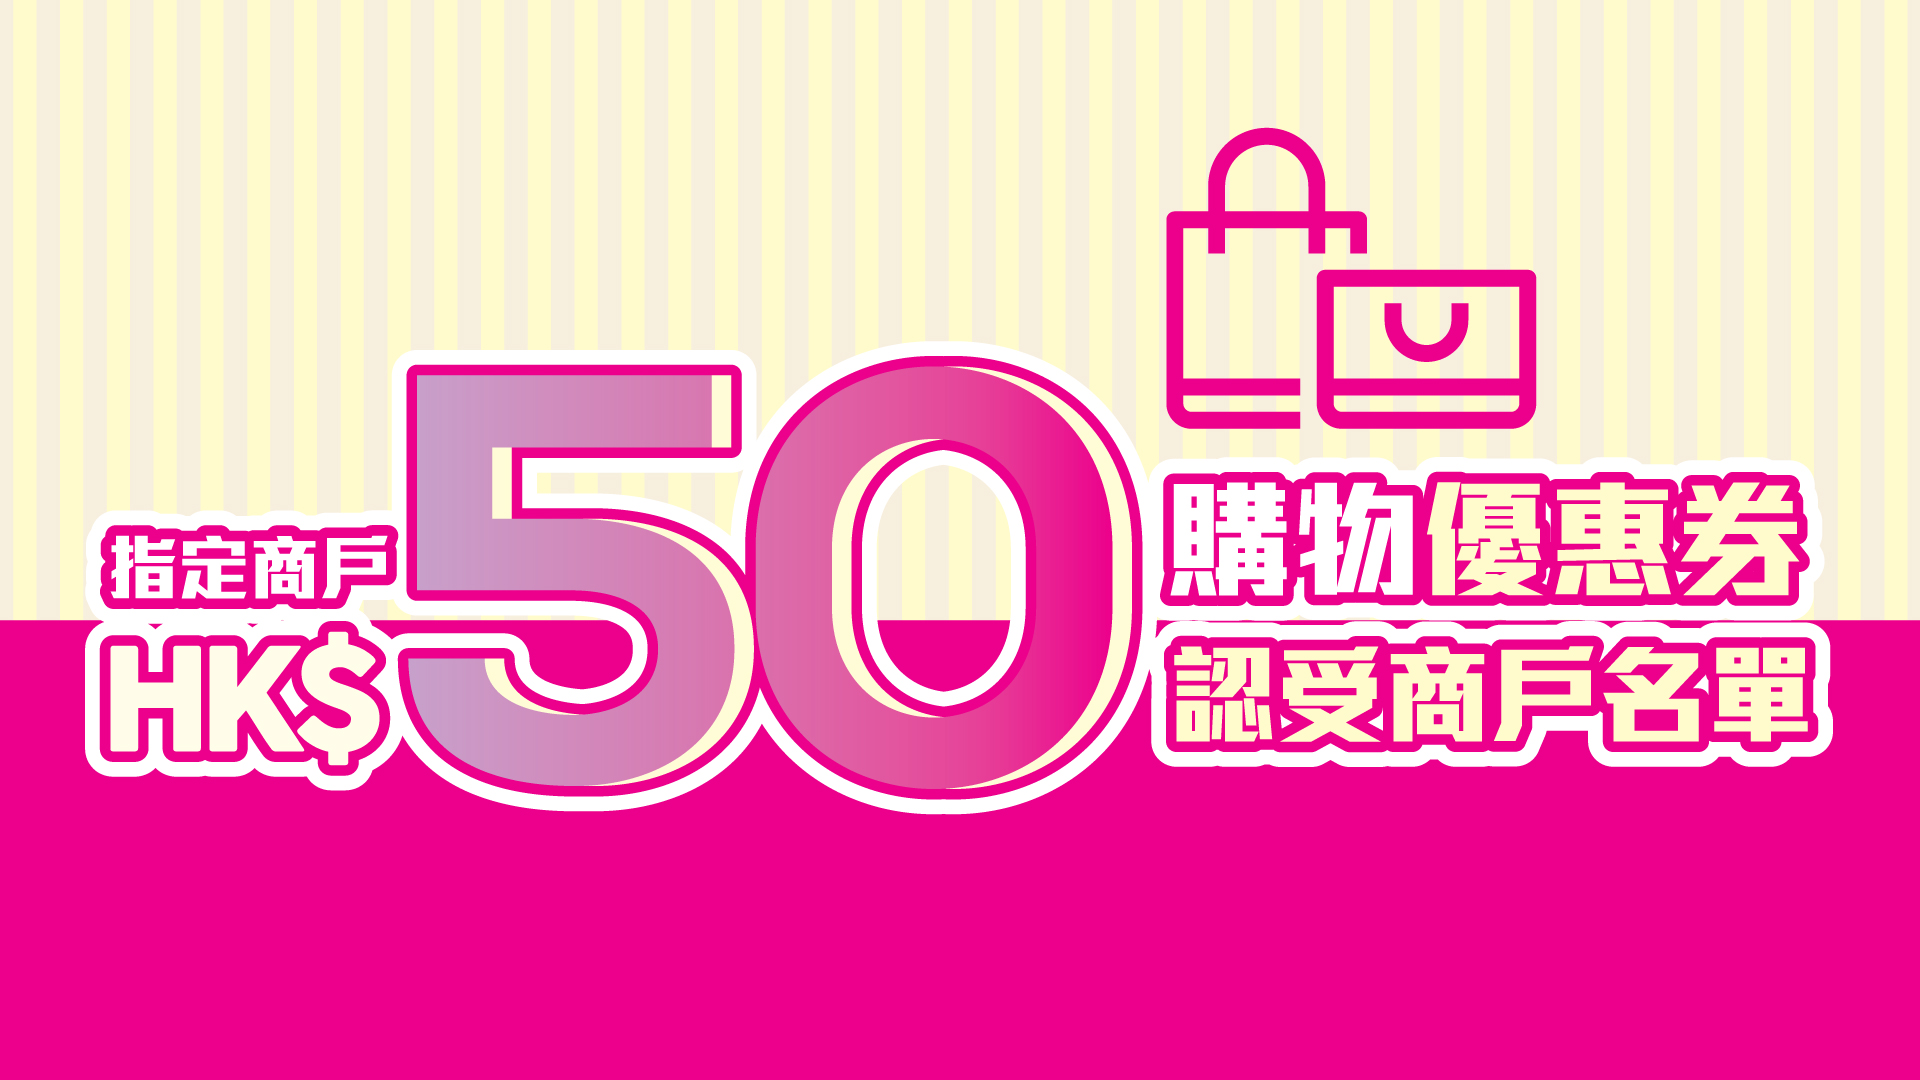 Plaza Hollywood Shopping HK$50 Conditional Coupon - Participating designated outlets at Plaza Hollywood